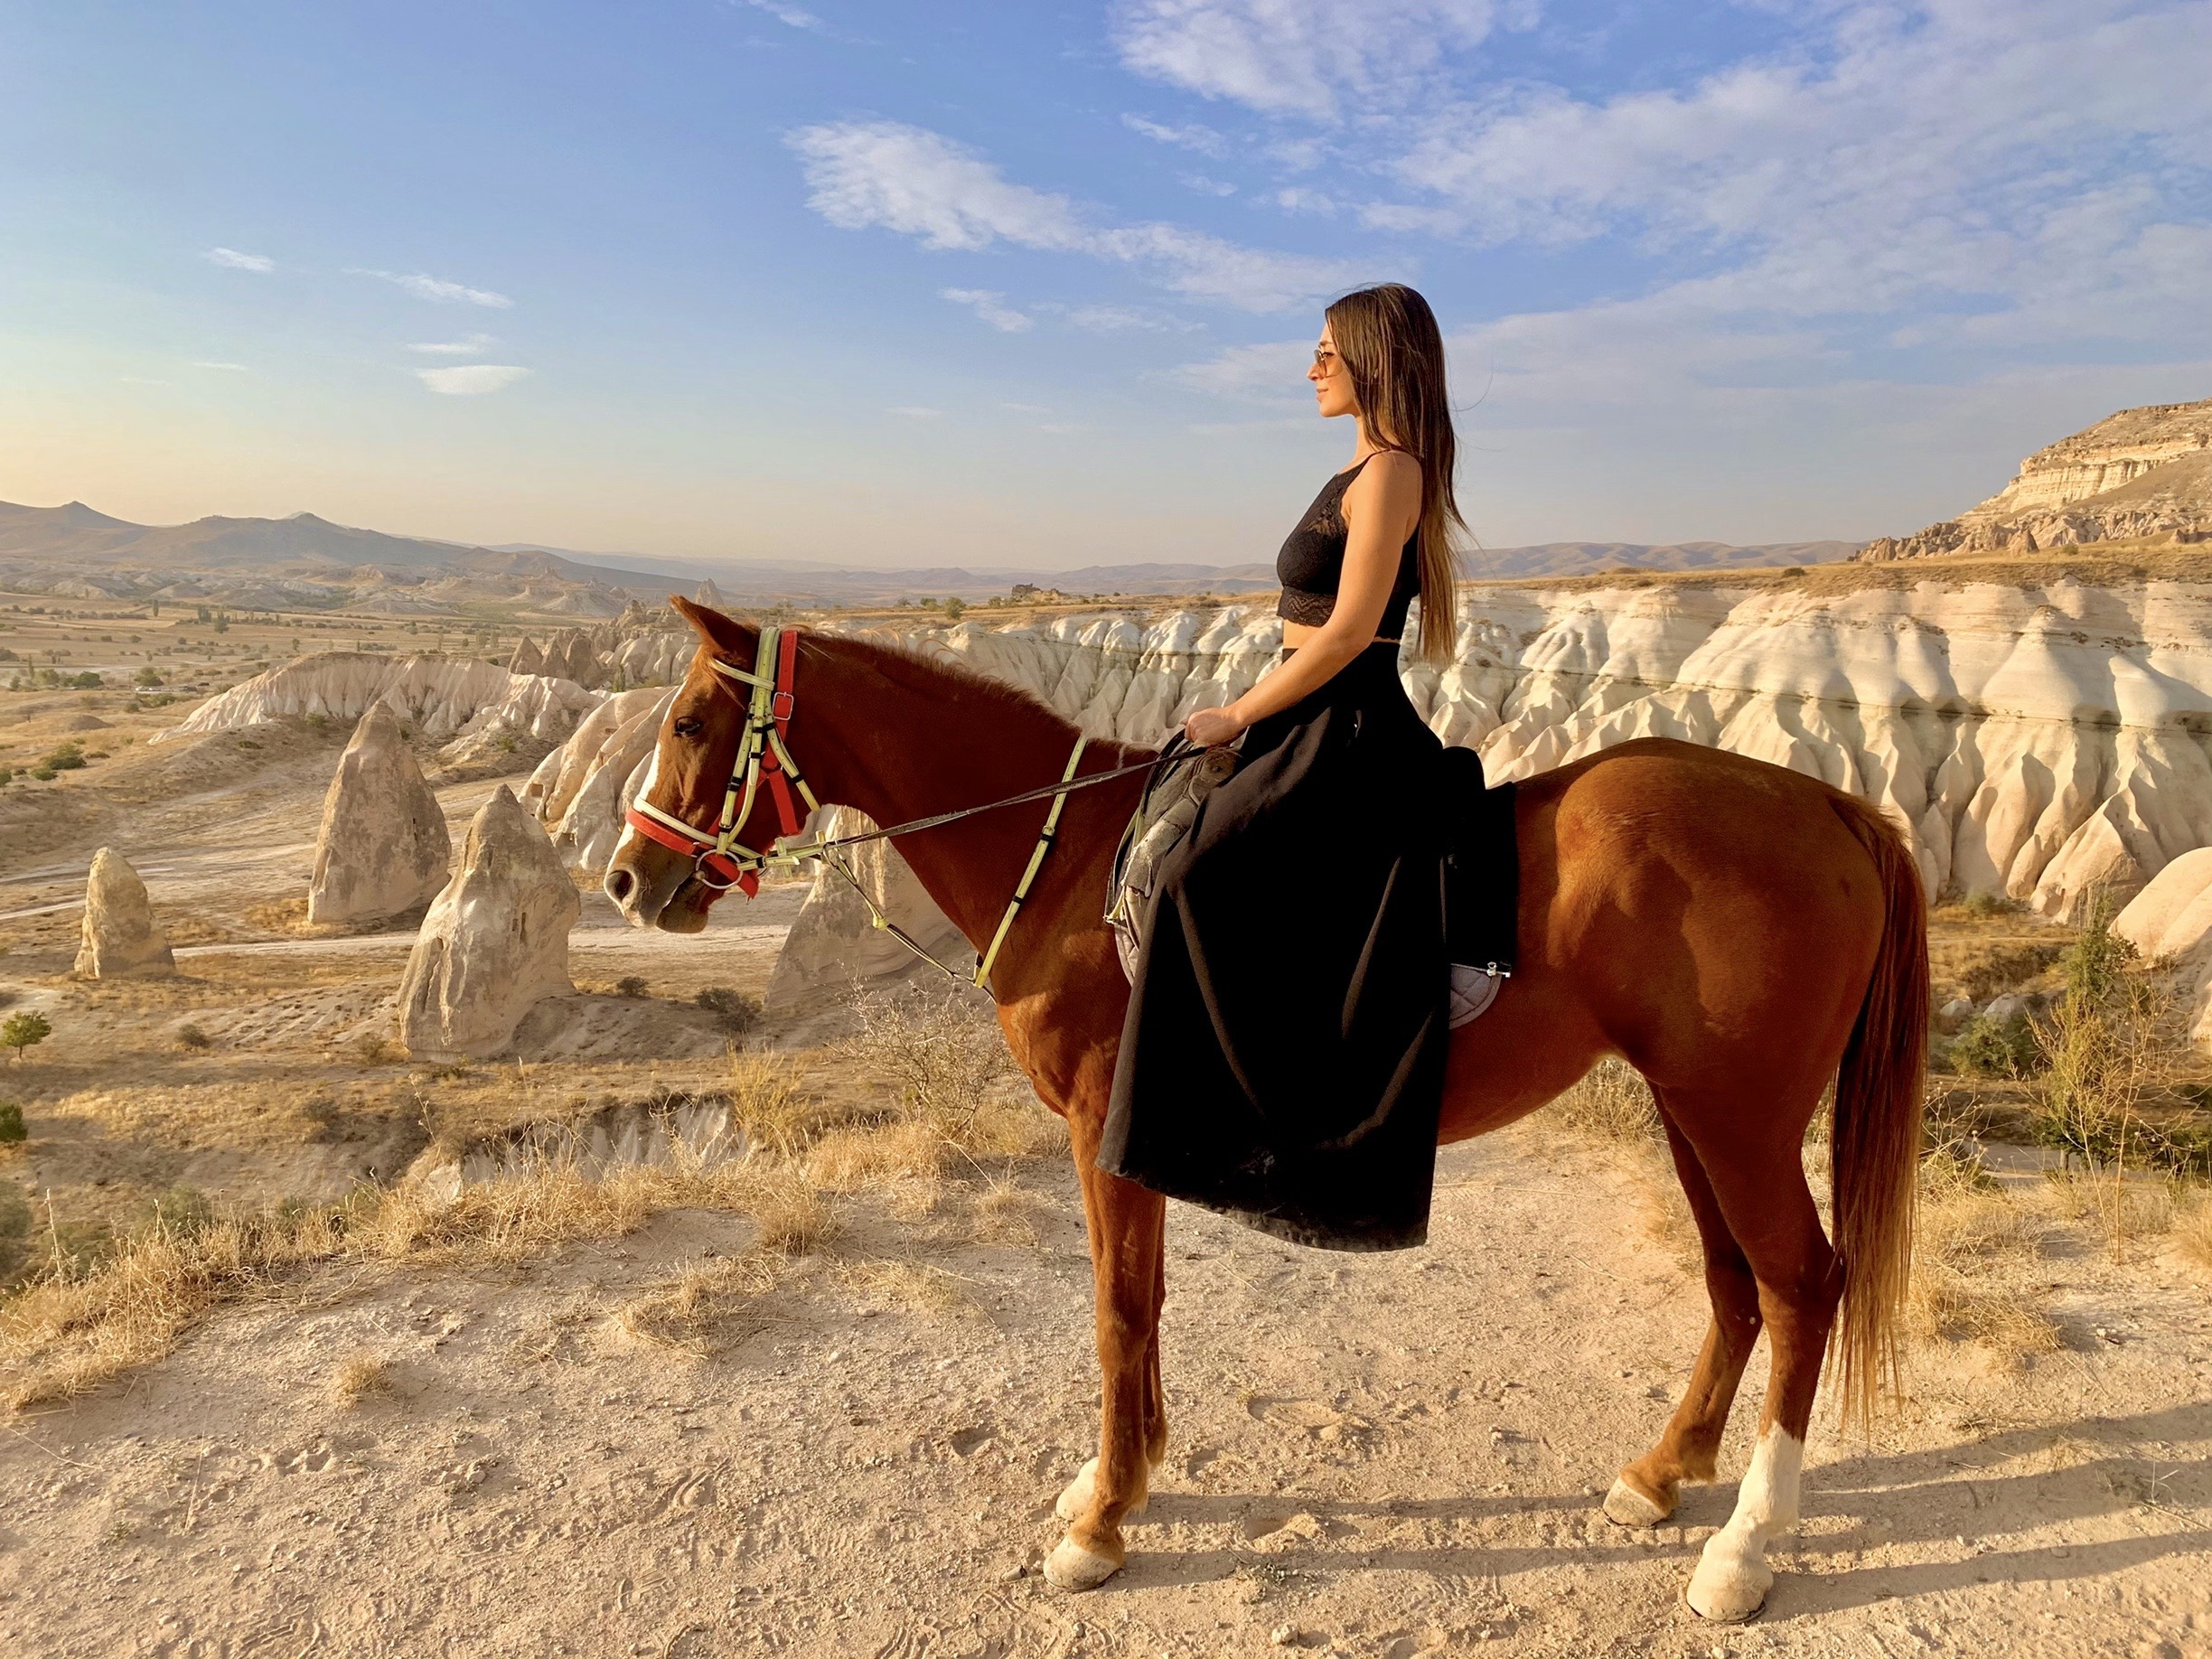 horseback-riding-cappadocia-turkey-lustforthesublime